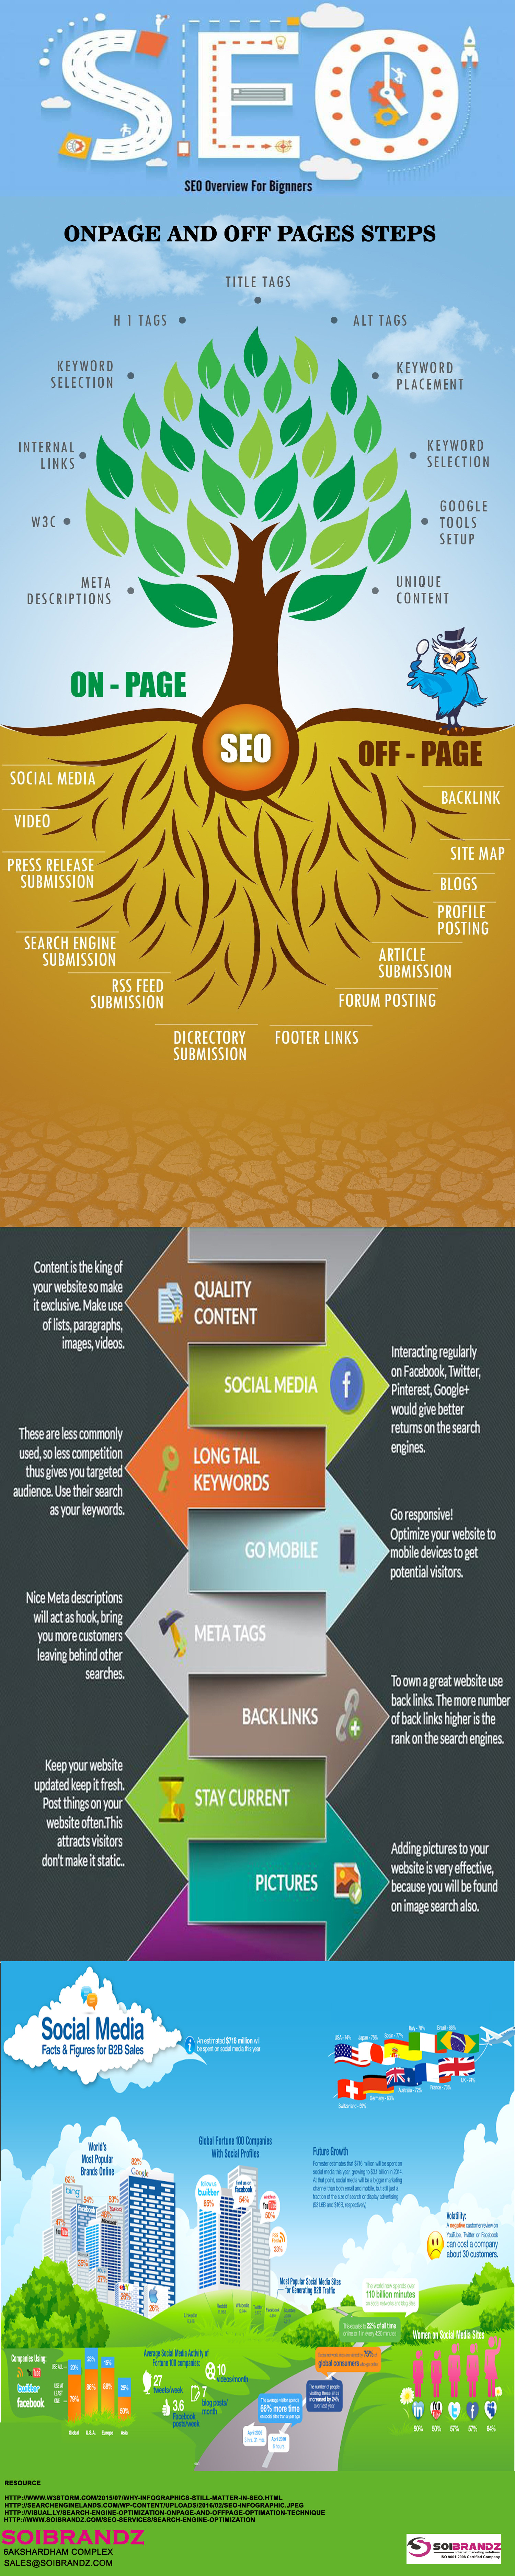 Search Engine Optimization Overview - Beginners Guide  Infographic